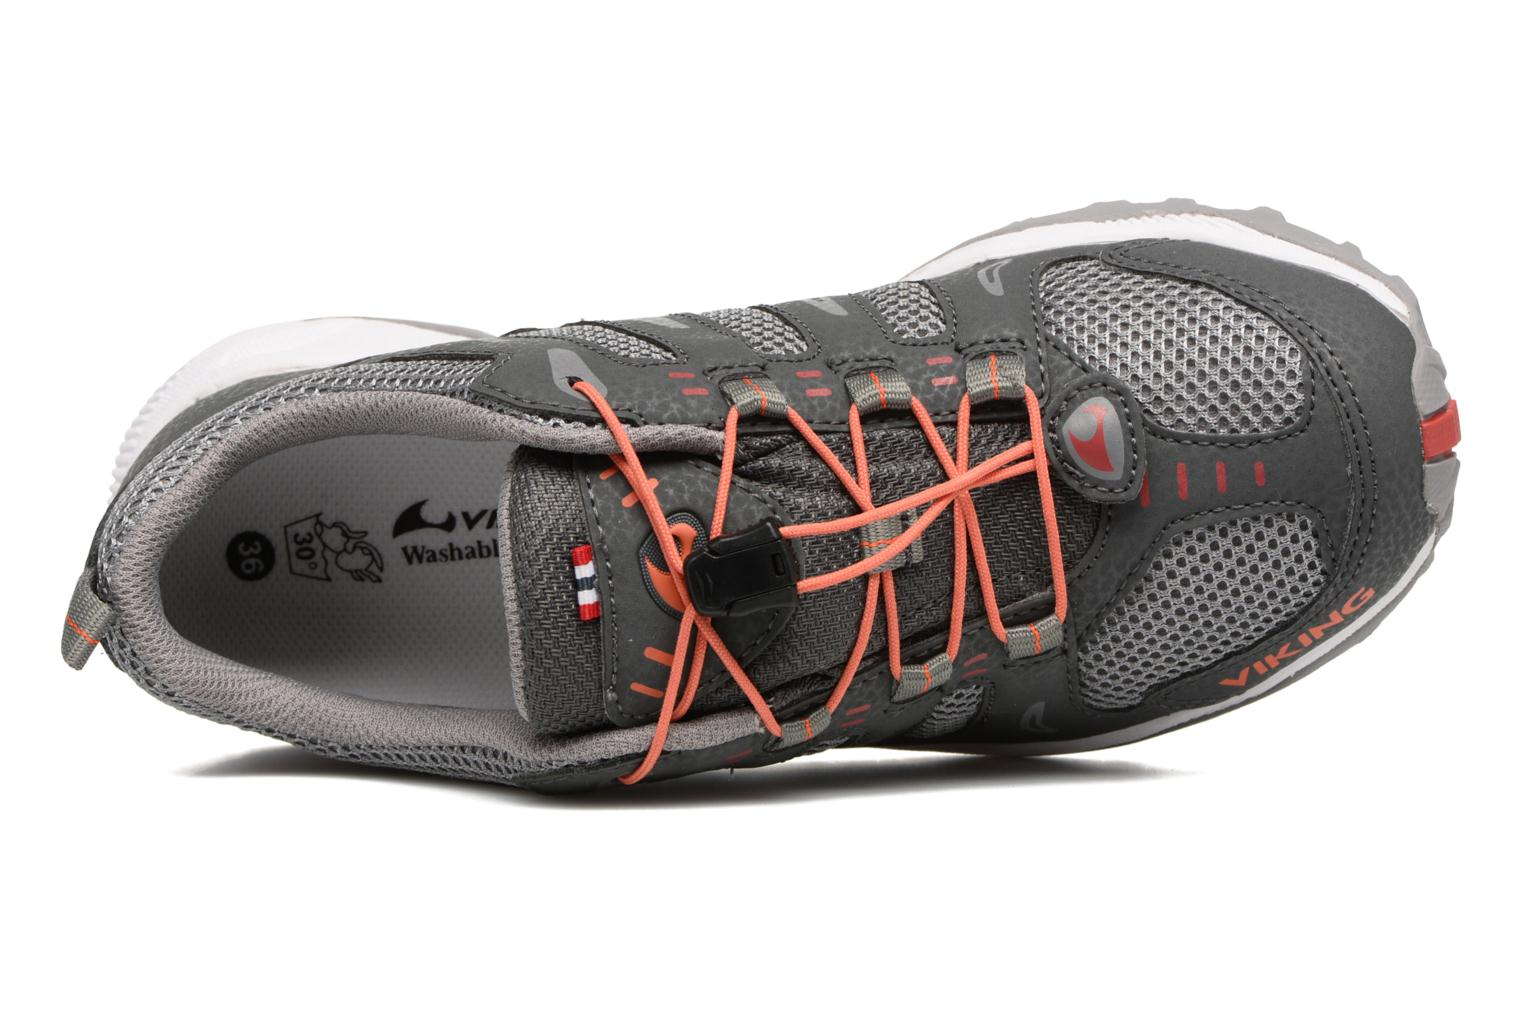 Terminator GTX Charcoal/red